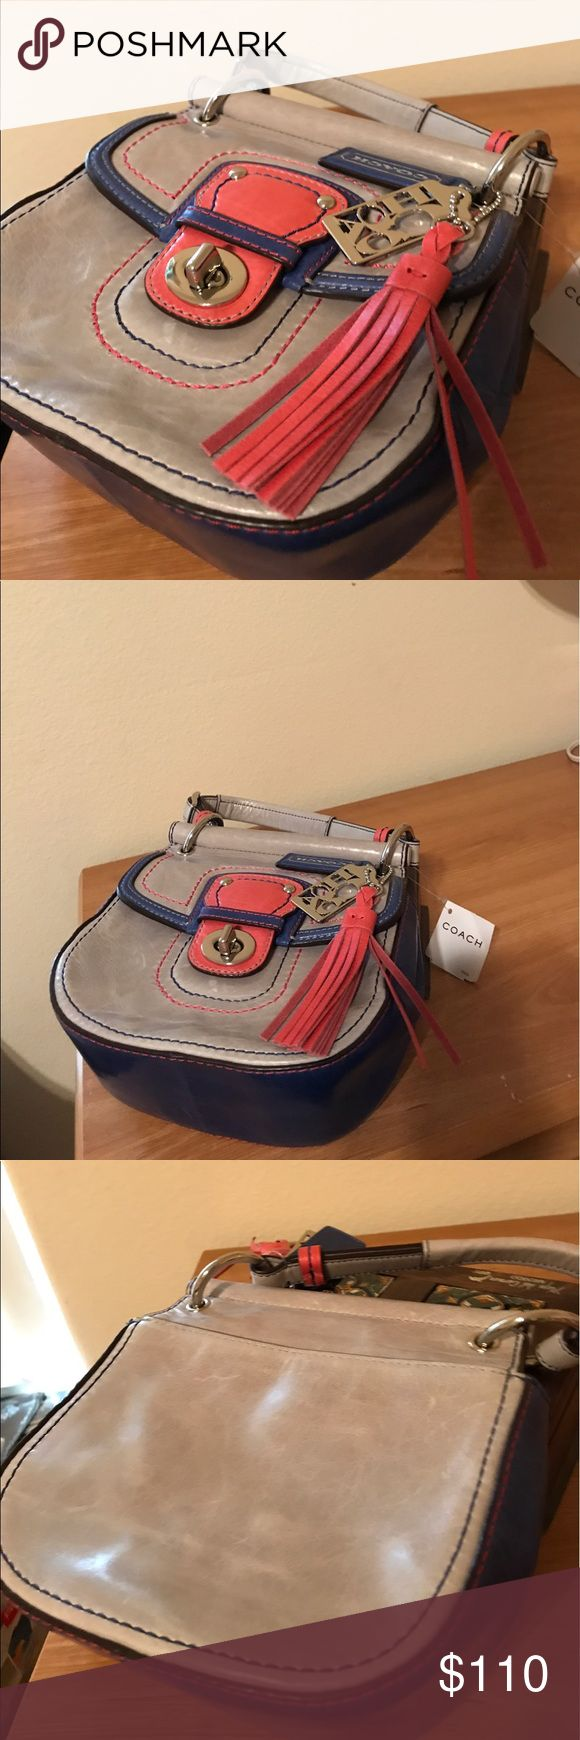 Brand new with tags Coach Purse Brand new with tags, perfect condition Coach Purse. Small bag, perfect for going out with shoulder strap. Size is 6.5 across, about 6 inches tall and about 3 inches deep. Colors are gray, pink and cobalt blue. Price tag says $189. Material is leather. Coach Bags Crossbody Bags